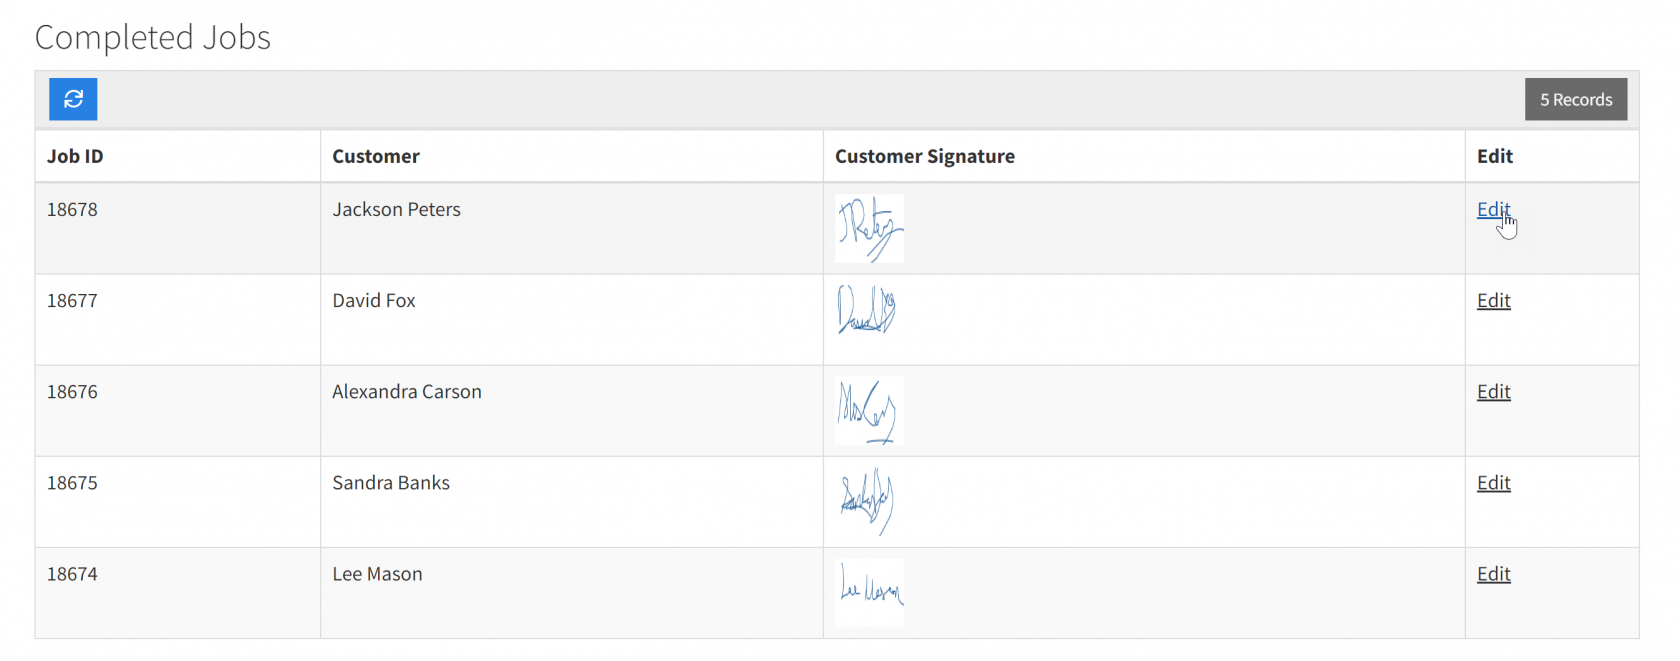 signature-completed-jobs.png